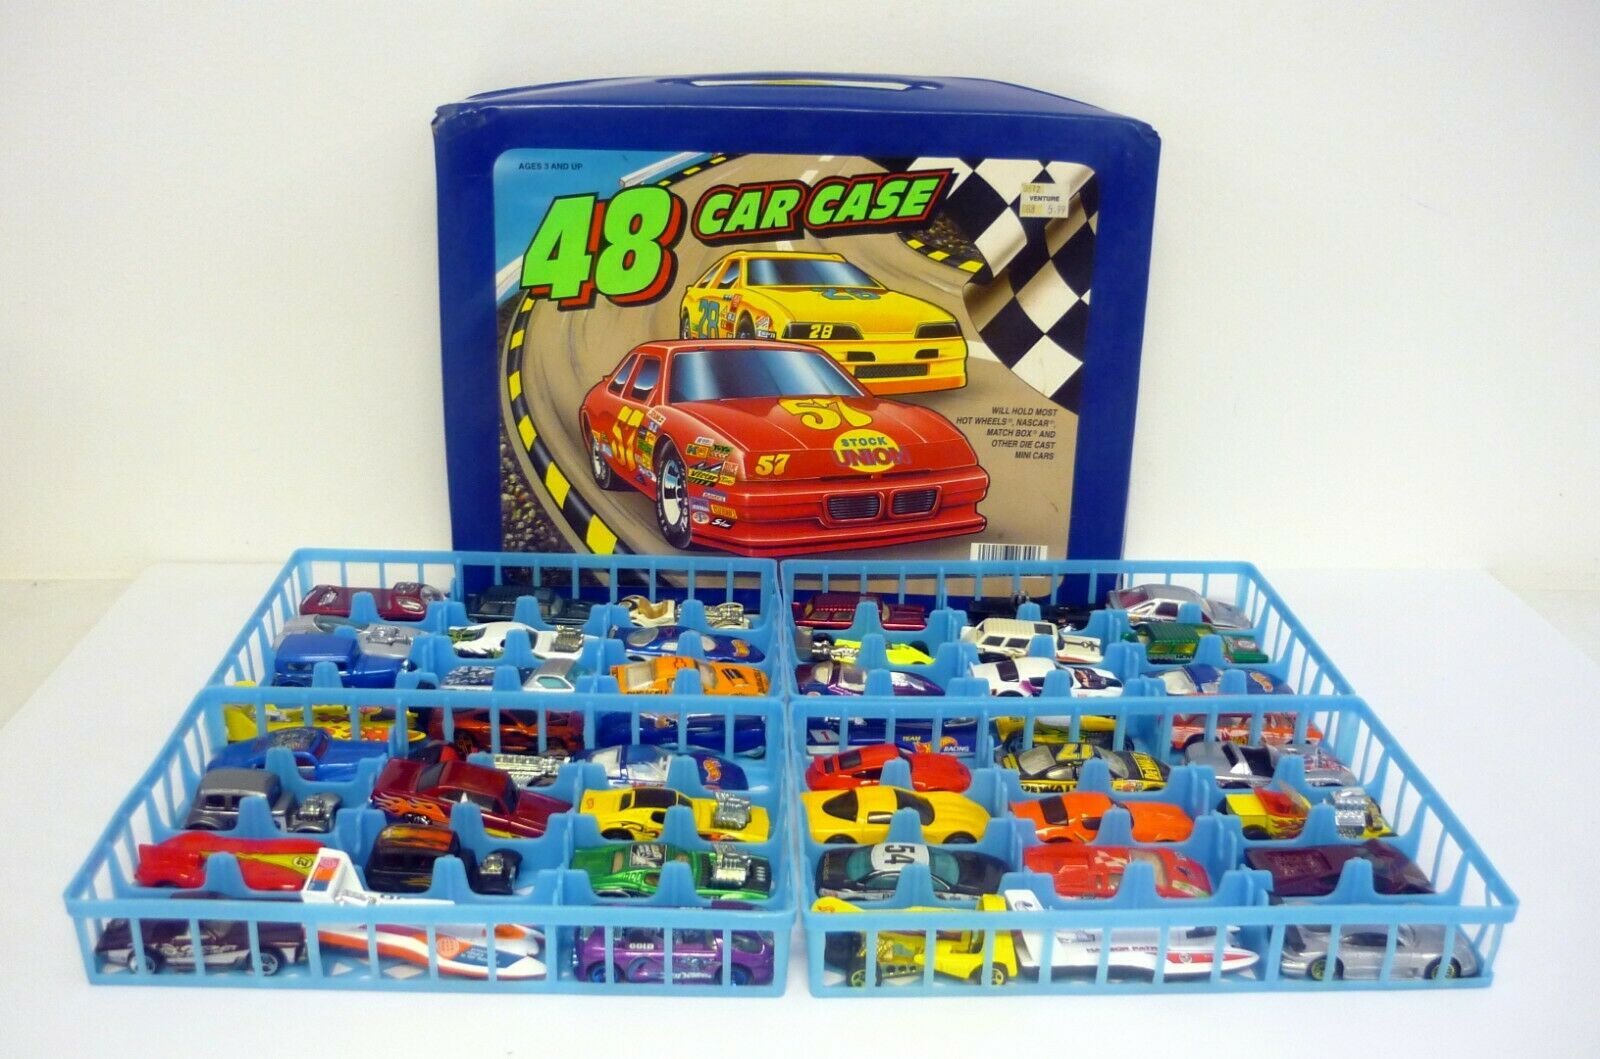 48 CAR CASE Tara Toys Holds Hot Hot Hot Wheels, Nascar, Match Box & other Die-Cast Cars 5ee347